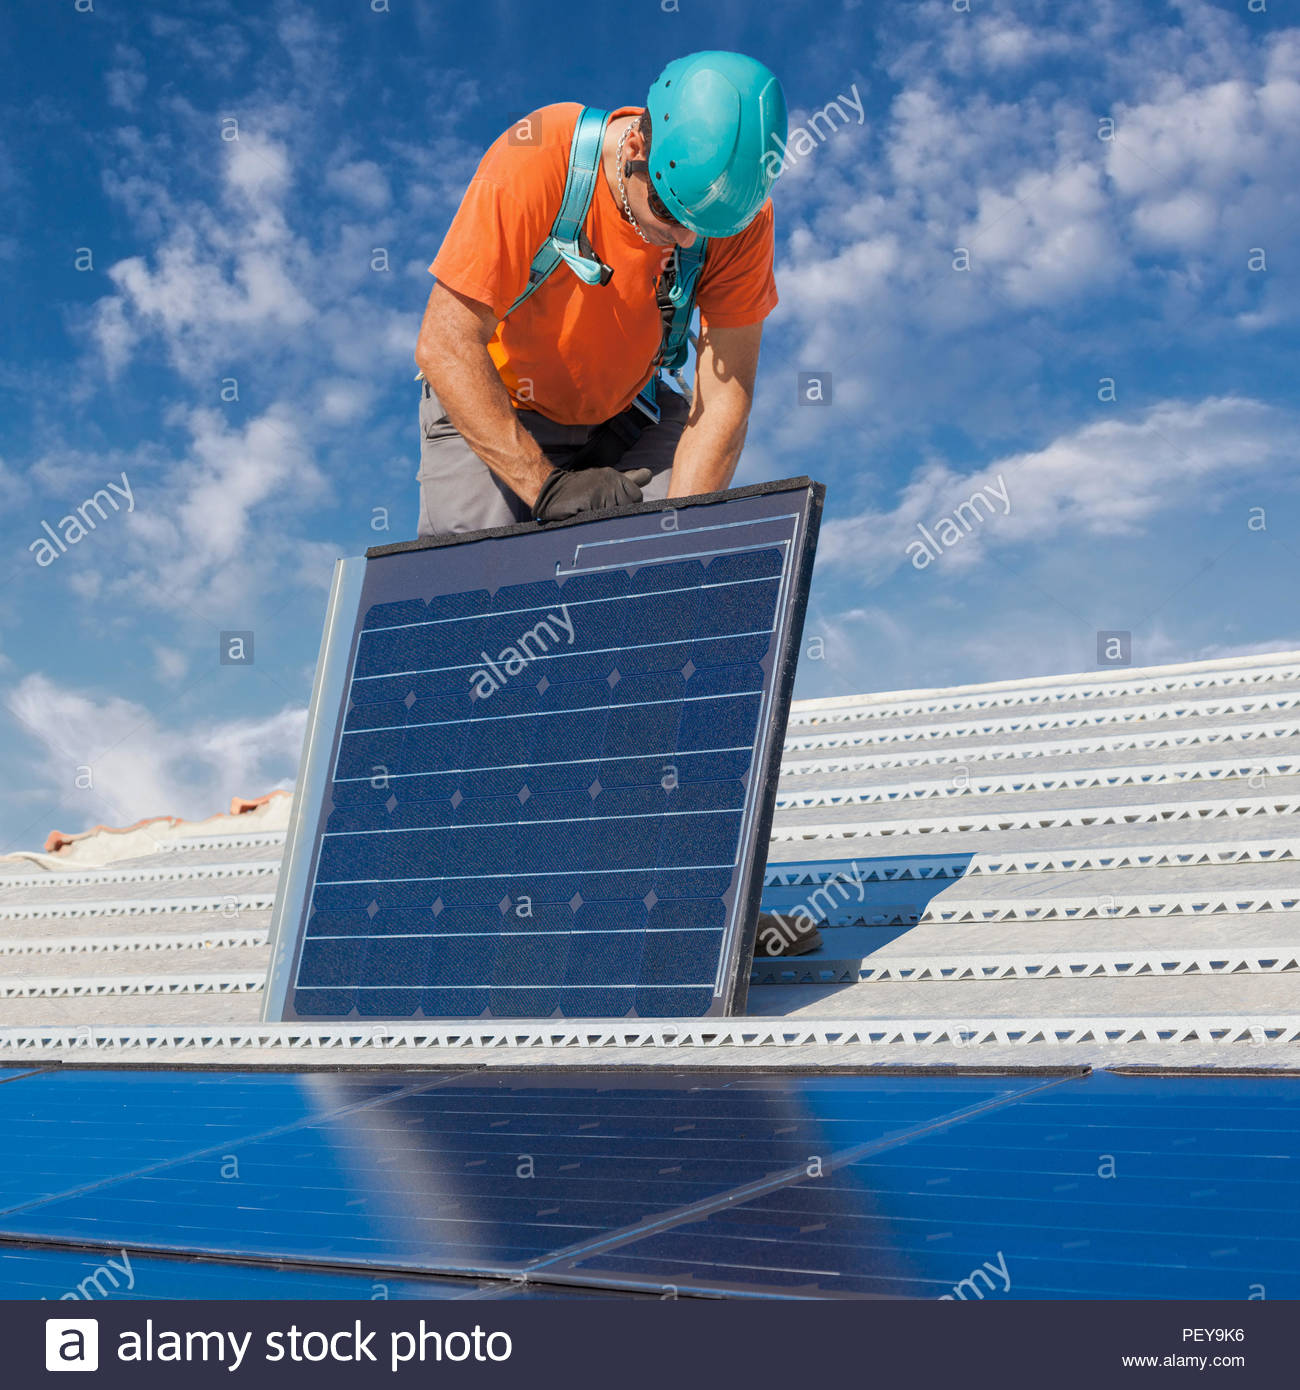 Man Solar Panel Stock Photos Images Alamy With Corrugated Thin Film Cells On Wiring Panels In At Work Installing Alternative Energy Photovoltaic Roof Image